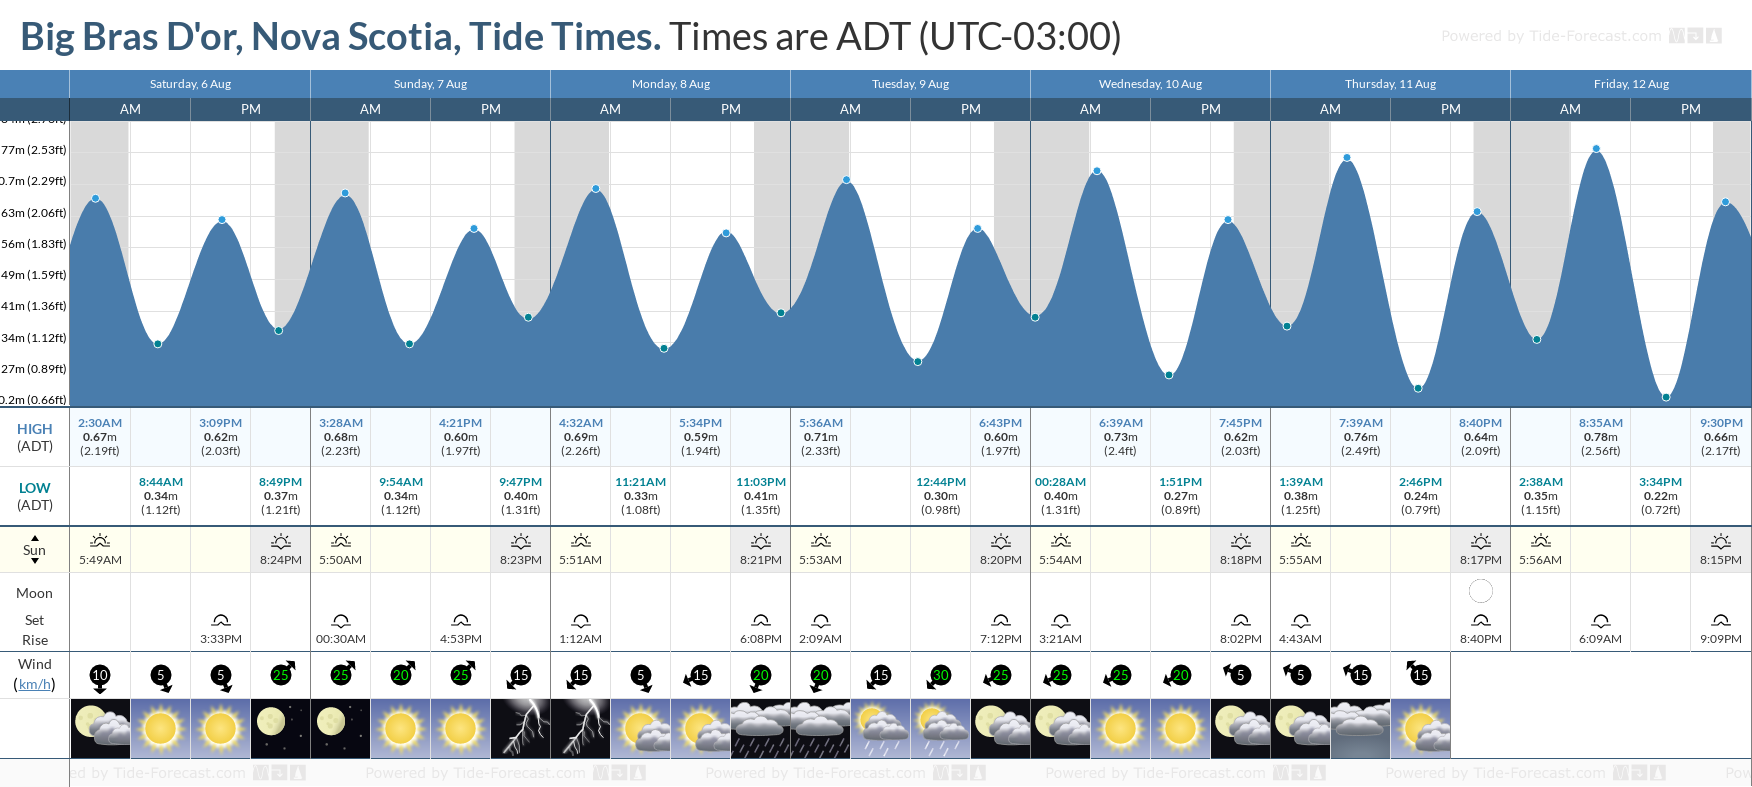 Big Bras D'or, Nova Scotia Tide Chart including high and low tide tide times for the next 7 days